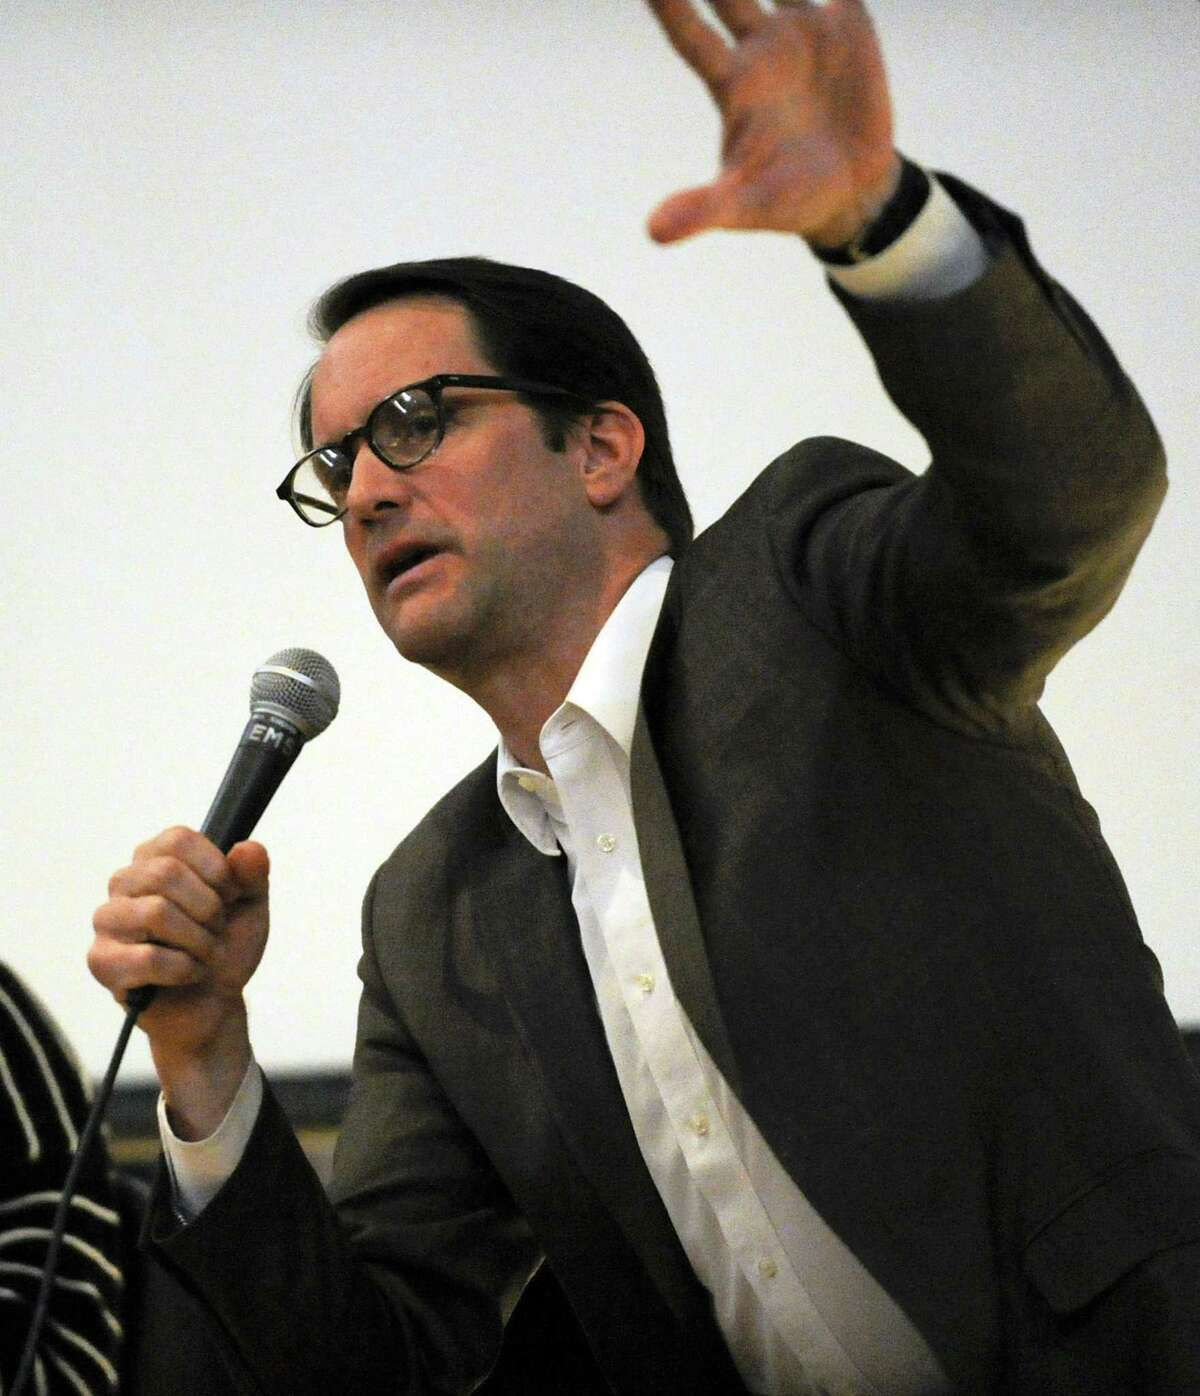 Representative Jim Himes (D-CT 4th District) speaks to Greenwich Indivisible about new policy agendas on Thursday, Feb. 21, 2019 in Greenwiich, Connecticut.